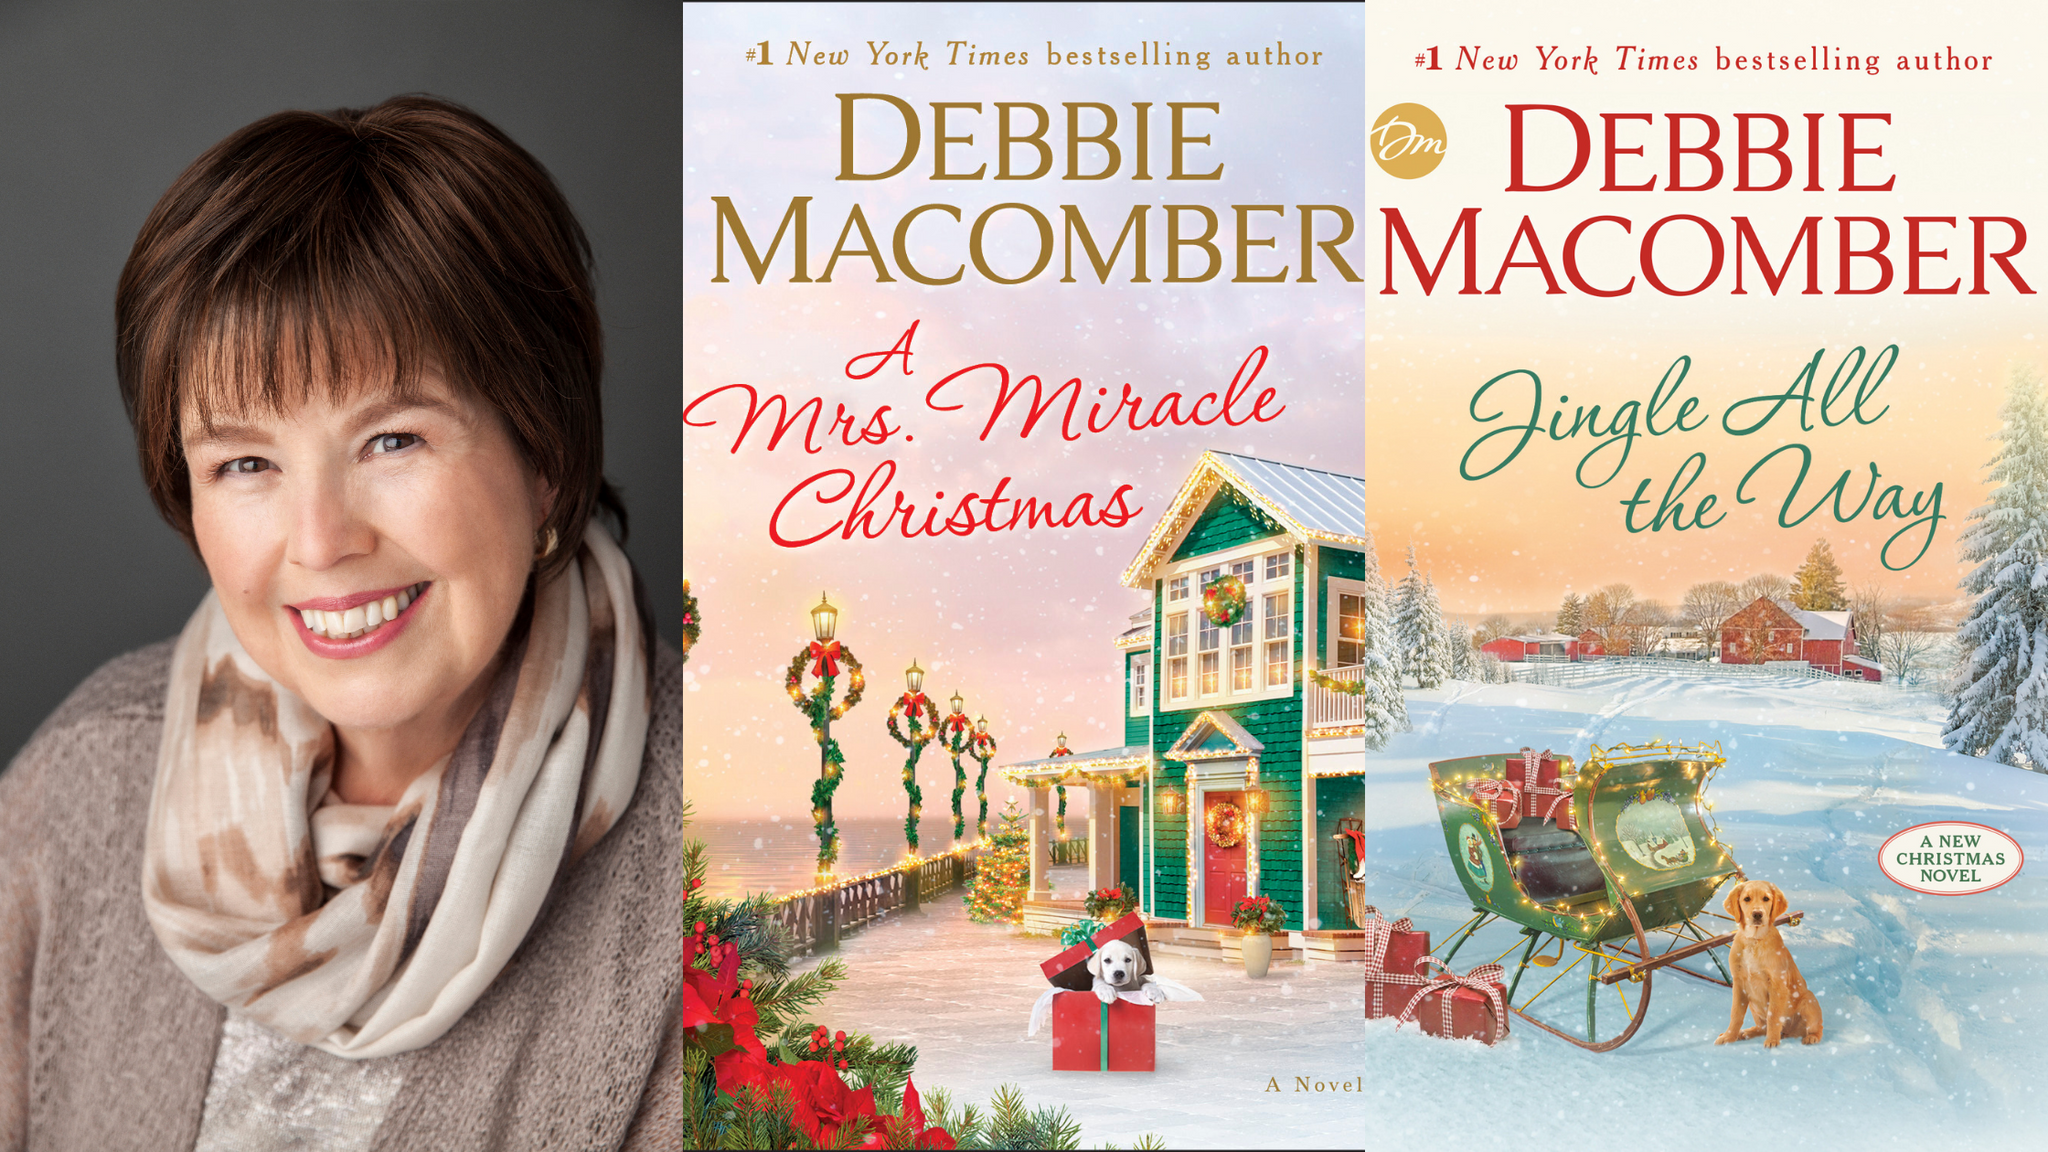 Featured Author: Debbie Macomber